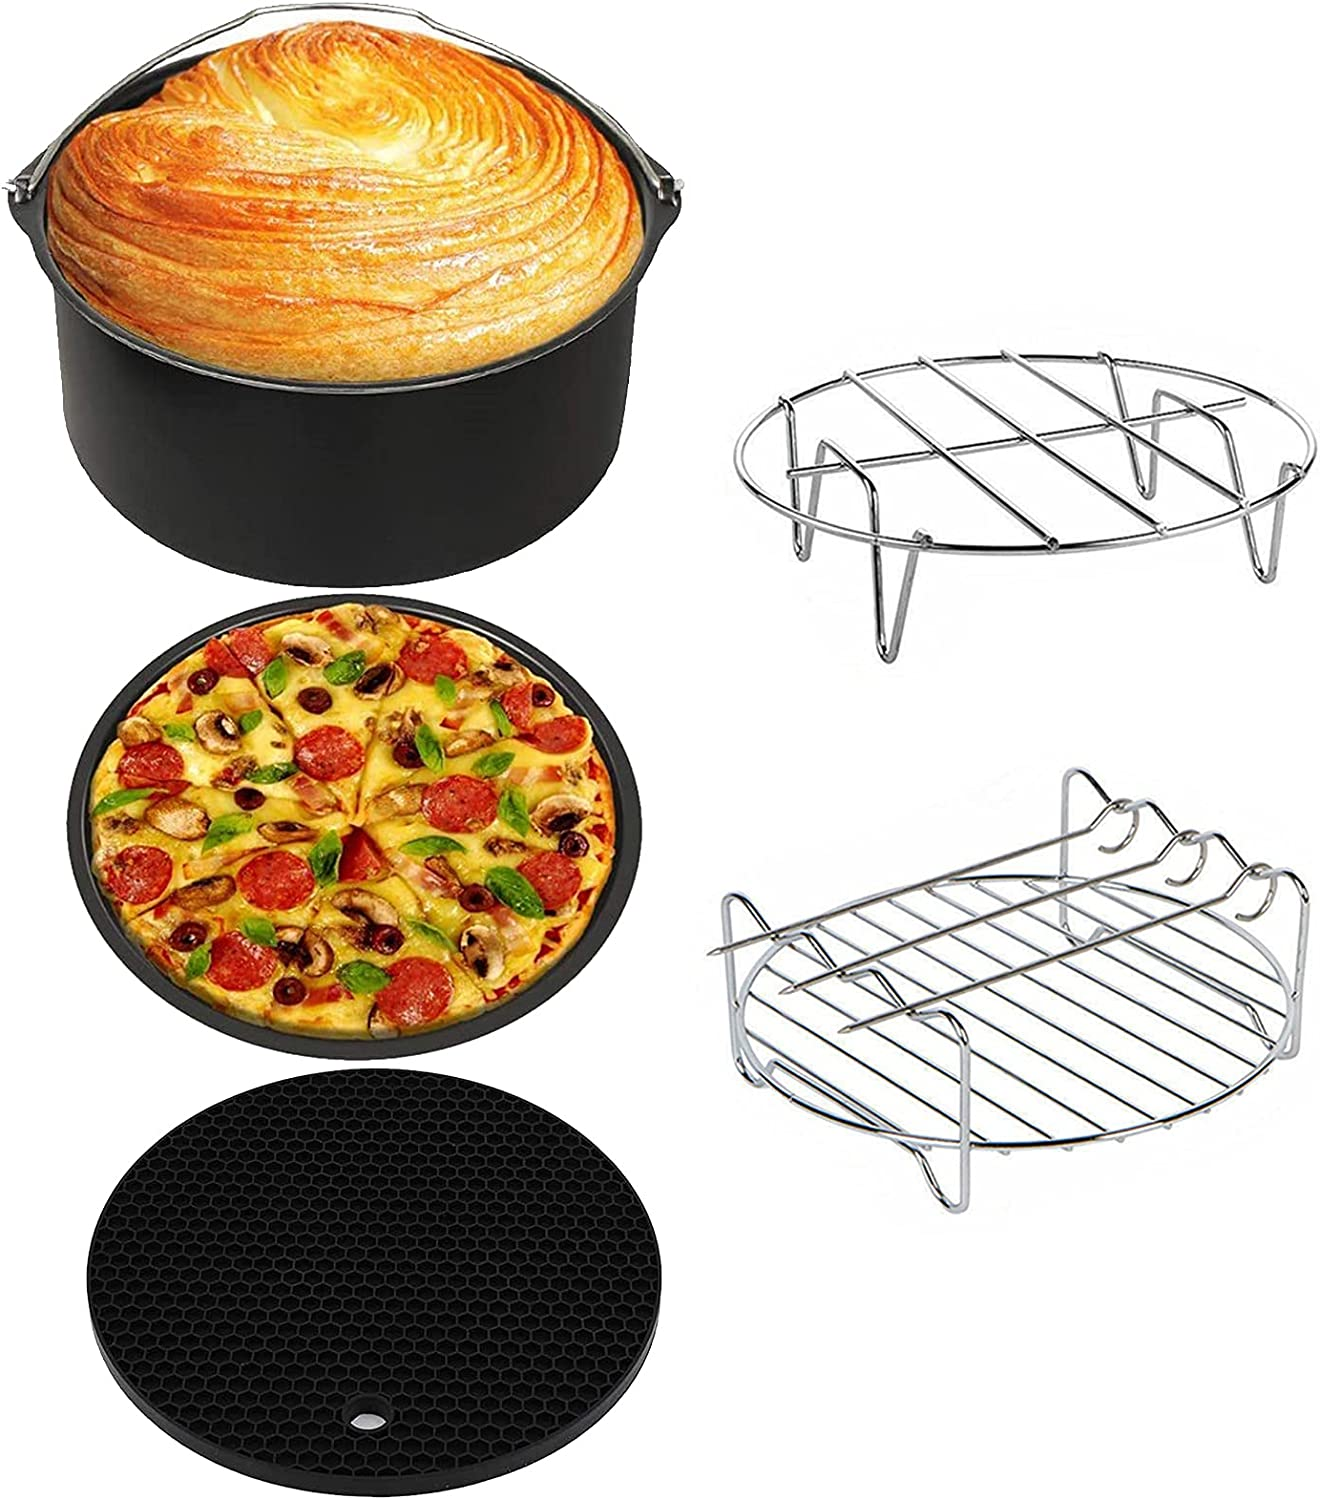 7 Inch Air Fryer Accessories 5 Pcs for Philips Ninja Gowise Gourmia, Fit all 3.2QT-3.7QT-4.2 Quarts Air Fryers with Cake & Pizza Pan, Skewer Rack, Metal Holder, Silicone Mat, Dishwasher Safe